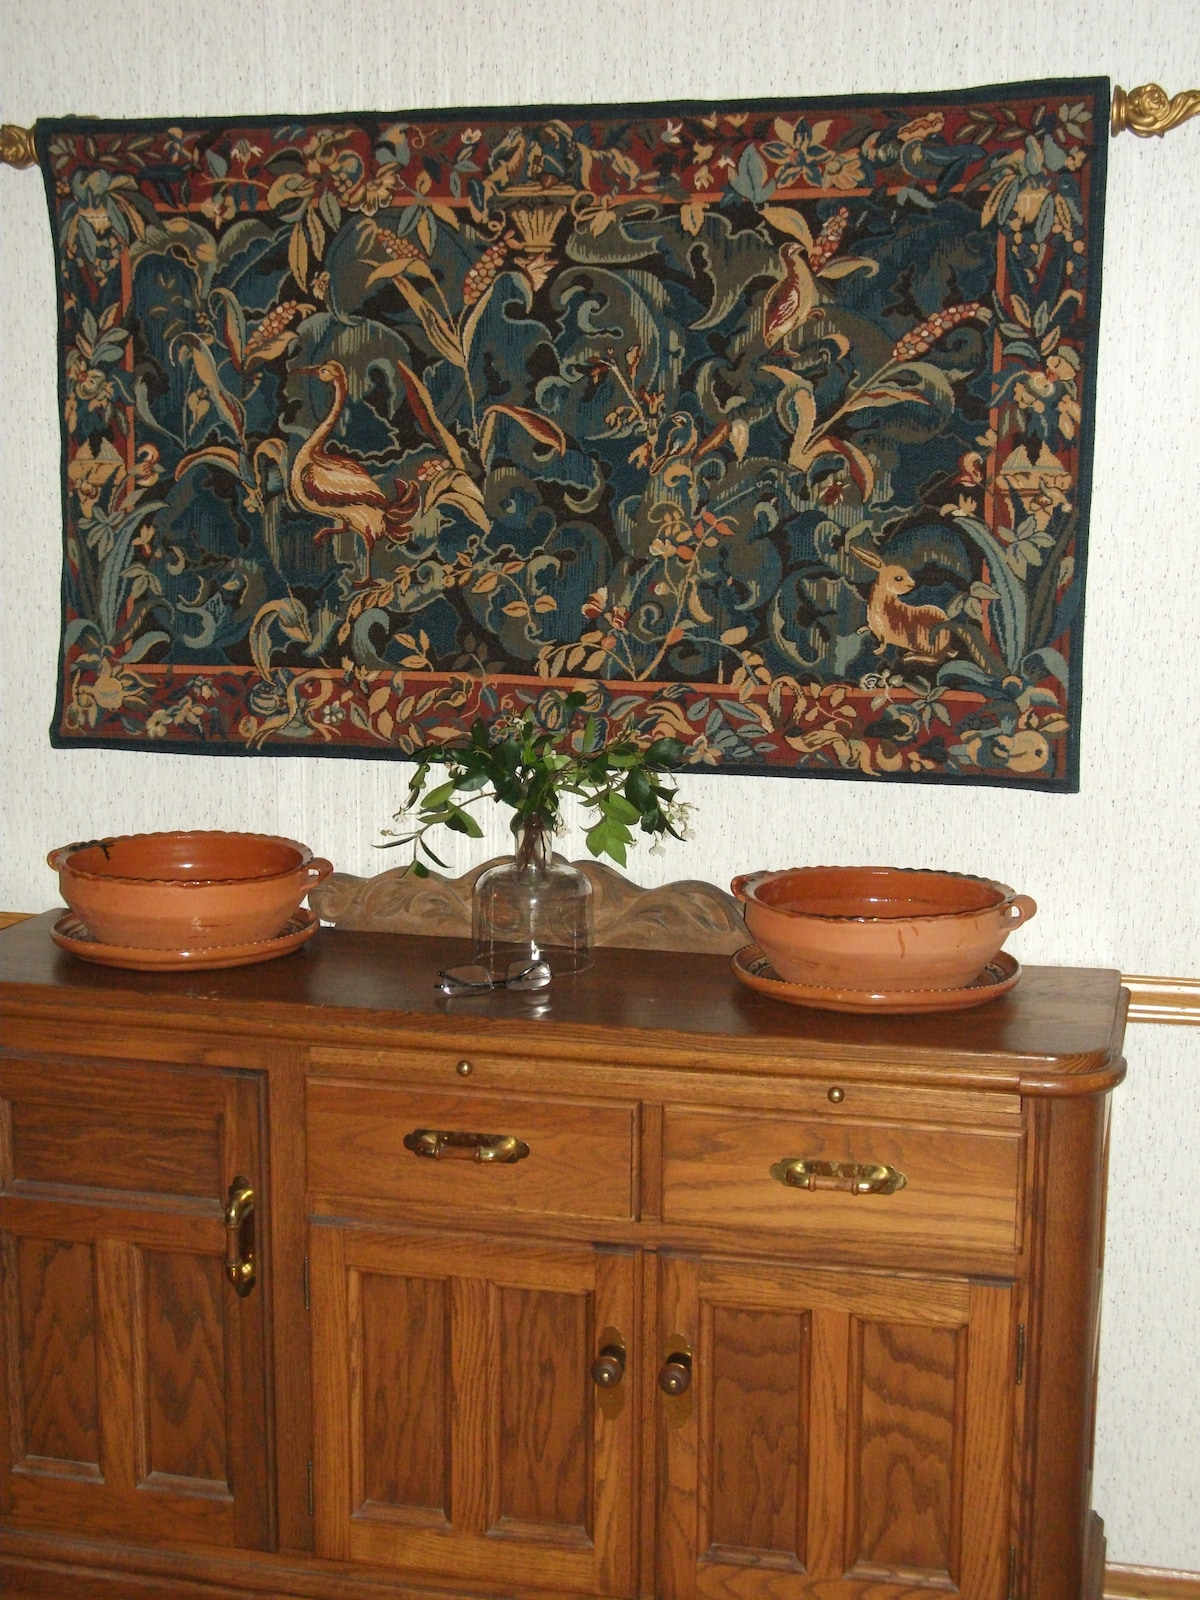 Beautiful Tapestry and Buffett!